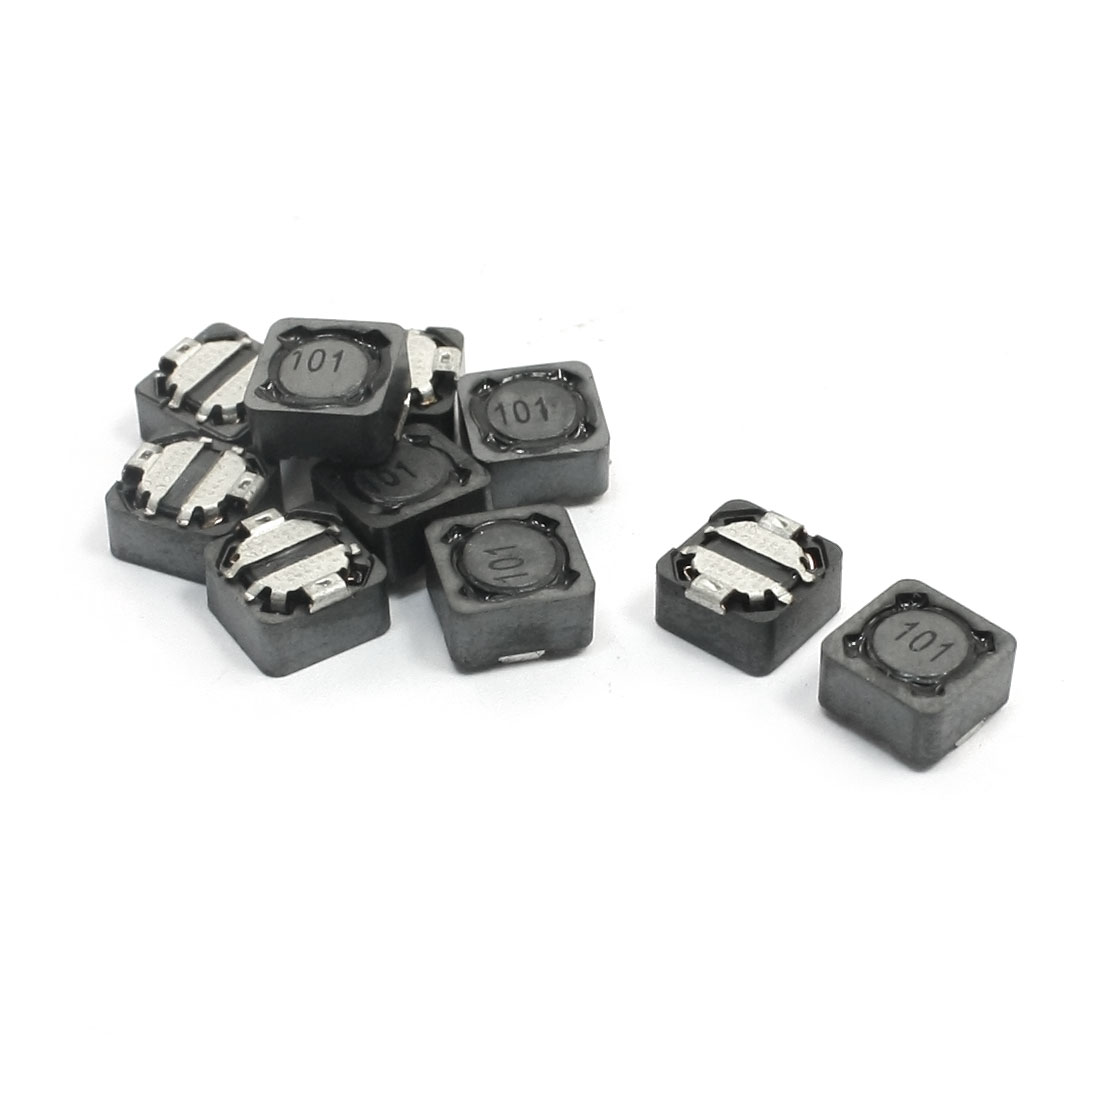 100uH 1A Gray Square Surface Mounting SMT SMD Power Inductor 7mm x 7mm x 4mm 10Pcs